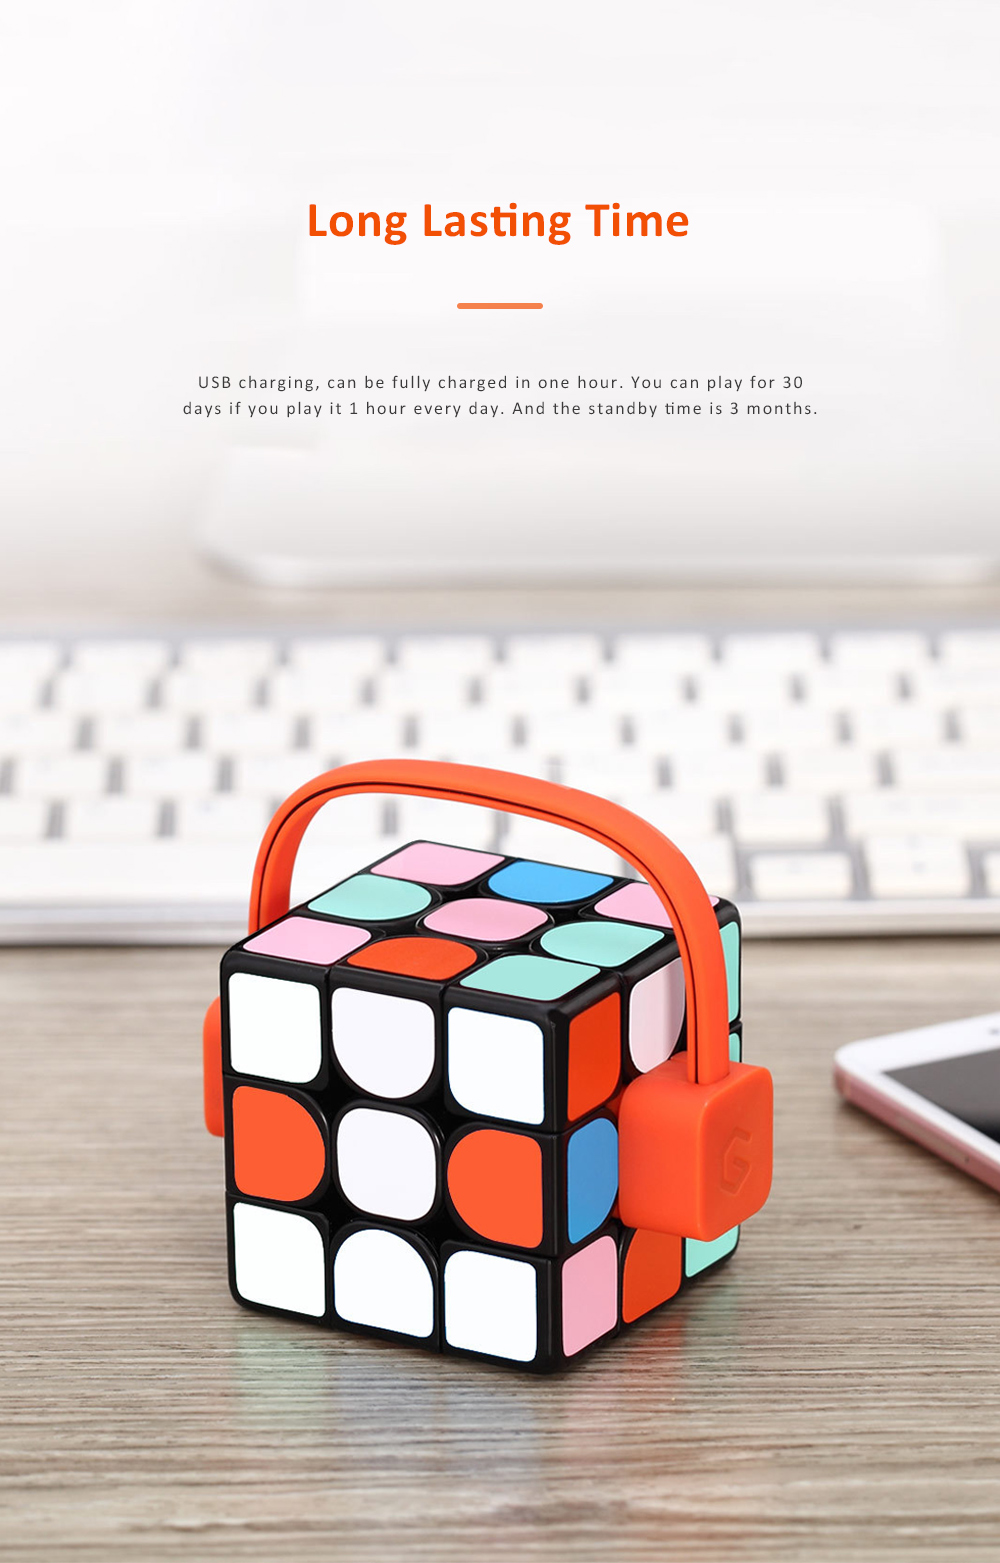 MI GIIKER Intelligent Super Cube Smart Magic Cube with Bluetooth Connection Real-time Sync for Education and Playing 5